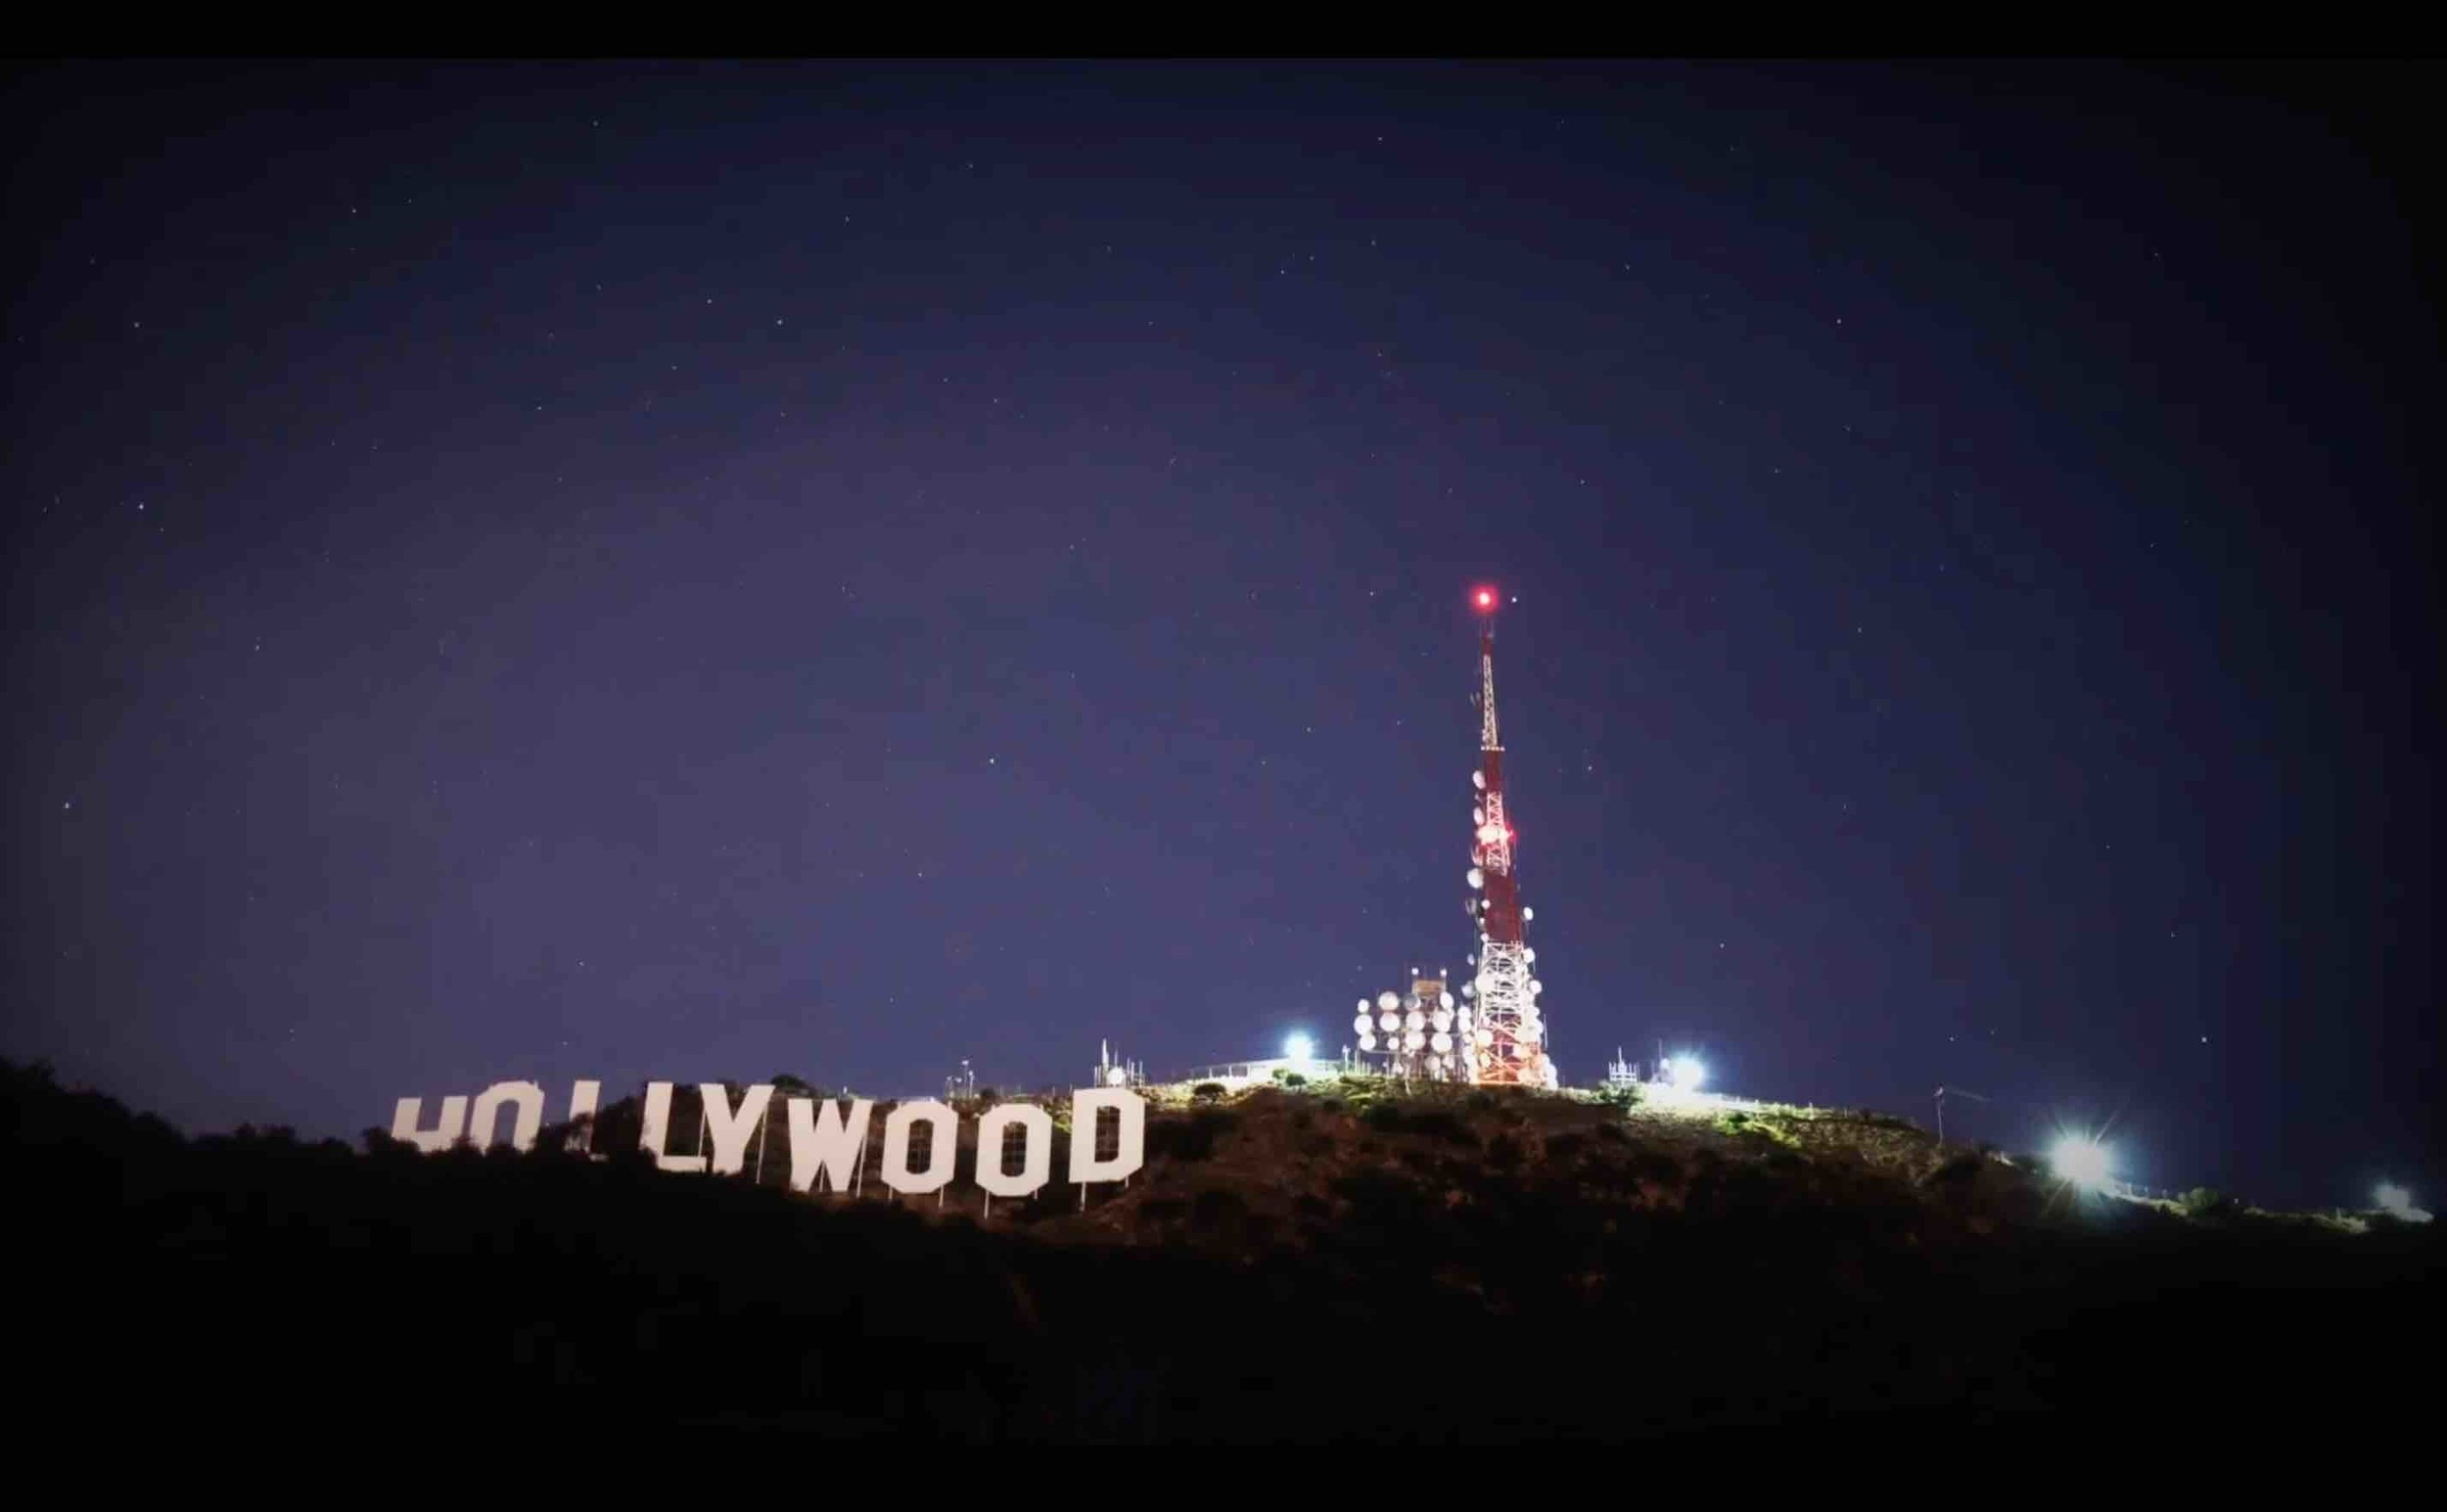 "HOLLYWOOD   is spelled out in 45-foot-tall (14 m) white capital letters and is 350 feet (110 m) long. It was originally created in 1923 as an advertisement for a local real estate development, but it garnered increasing recognition after the sign was left up. The sign was a frequent target of pranks and vandalism, but it has since undergone restoration, including the installation of a security system to deter vandalism. The sign is protected and promoted by The Trust For Public Land, a nonprofit organization, while its site and the surrounding land are part of Griffith Park.  From the ground, the contours of the hills give the sign a ""wavy"" appearance, as reflected in the Hollywood Video logo, for example. When observed at a comparable altitude, the letters appear nearly level.  The sign makes frequent appearances in popular culture, particularly in establishing shots for films and television programs set in or around Hollywood. Signs of similar style, but spelling different words, are frequently seen as parodies. The sign inspired Los Angeles artist Ed Ruscha who rendered it in different media."